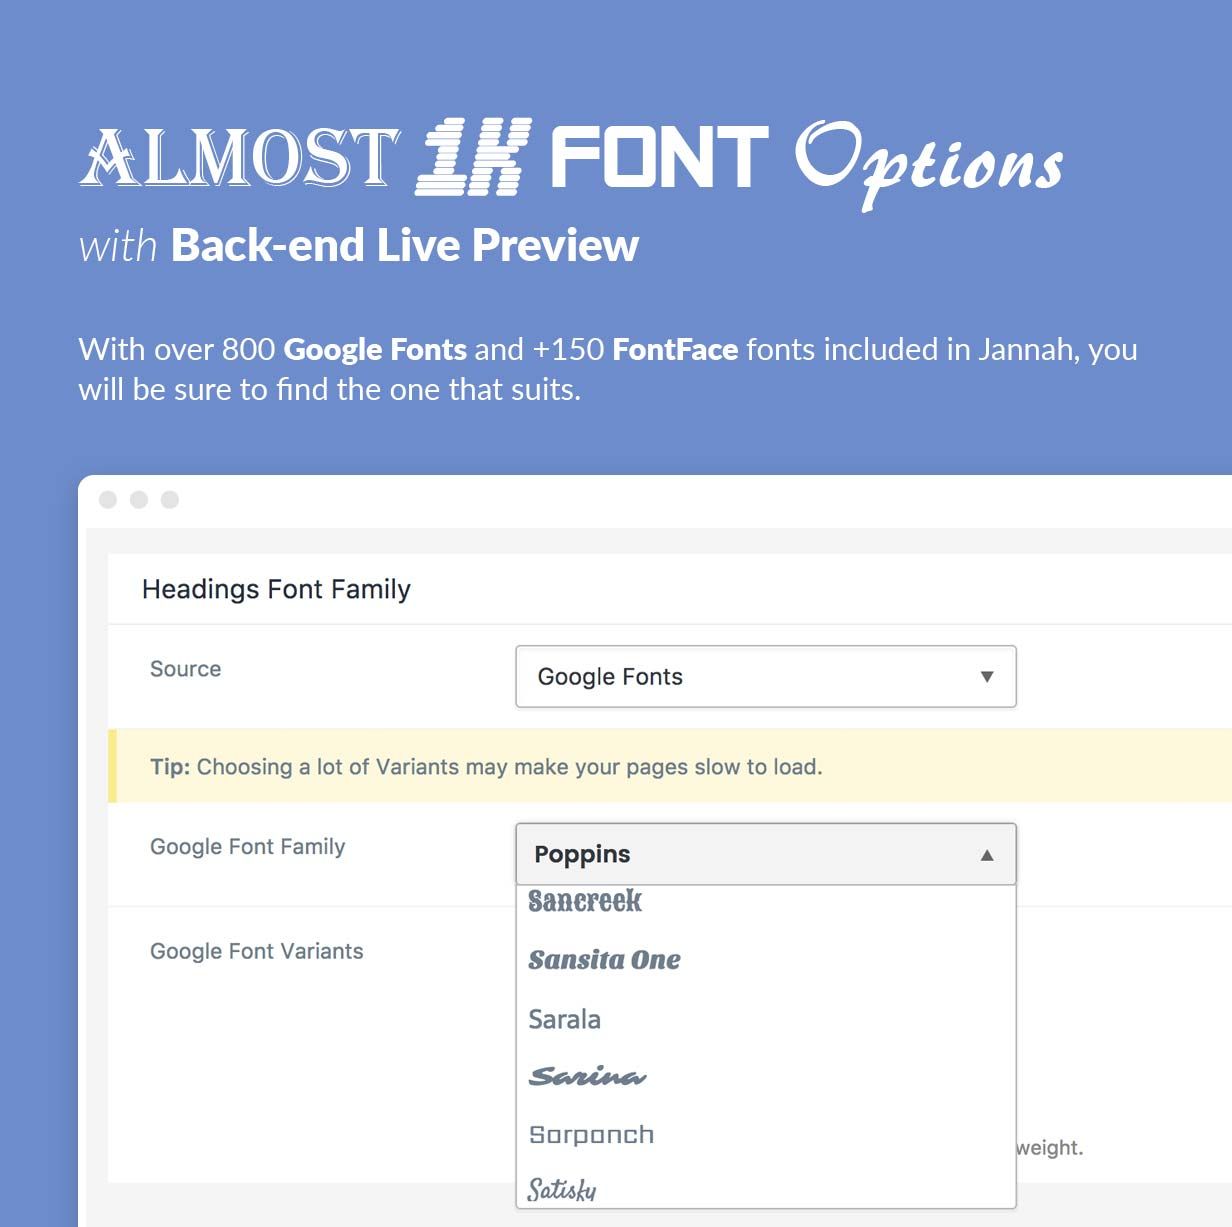 800 Google Fonts and +150 FontFace fonts